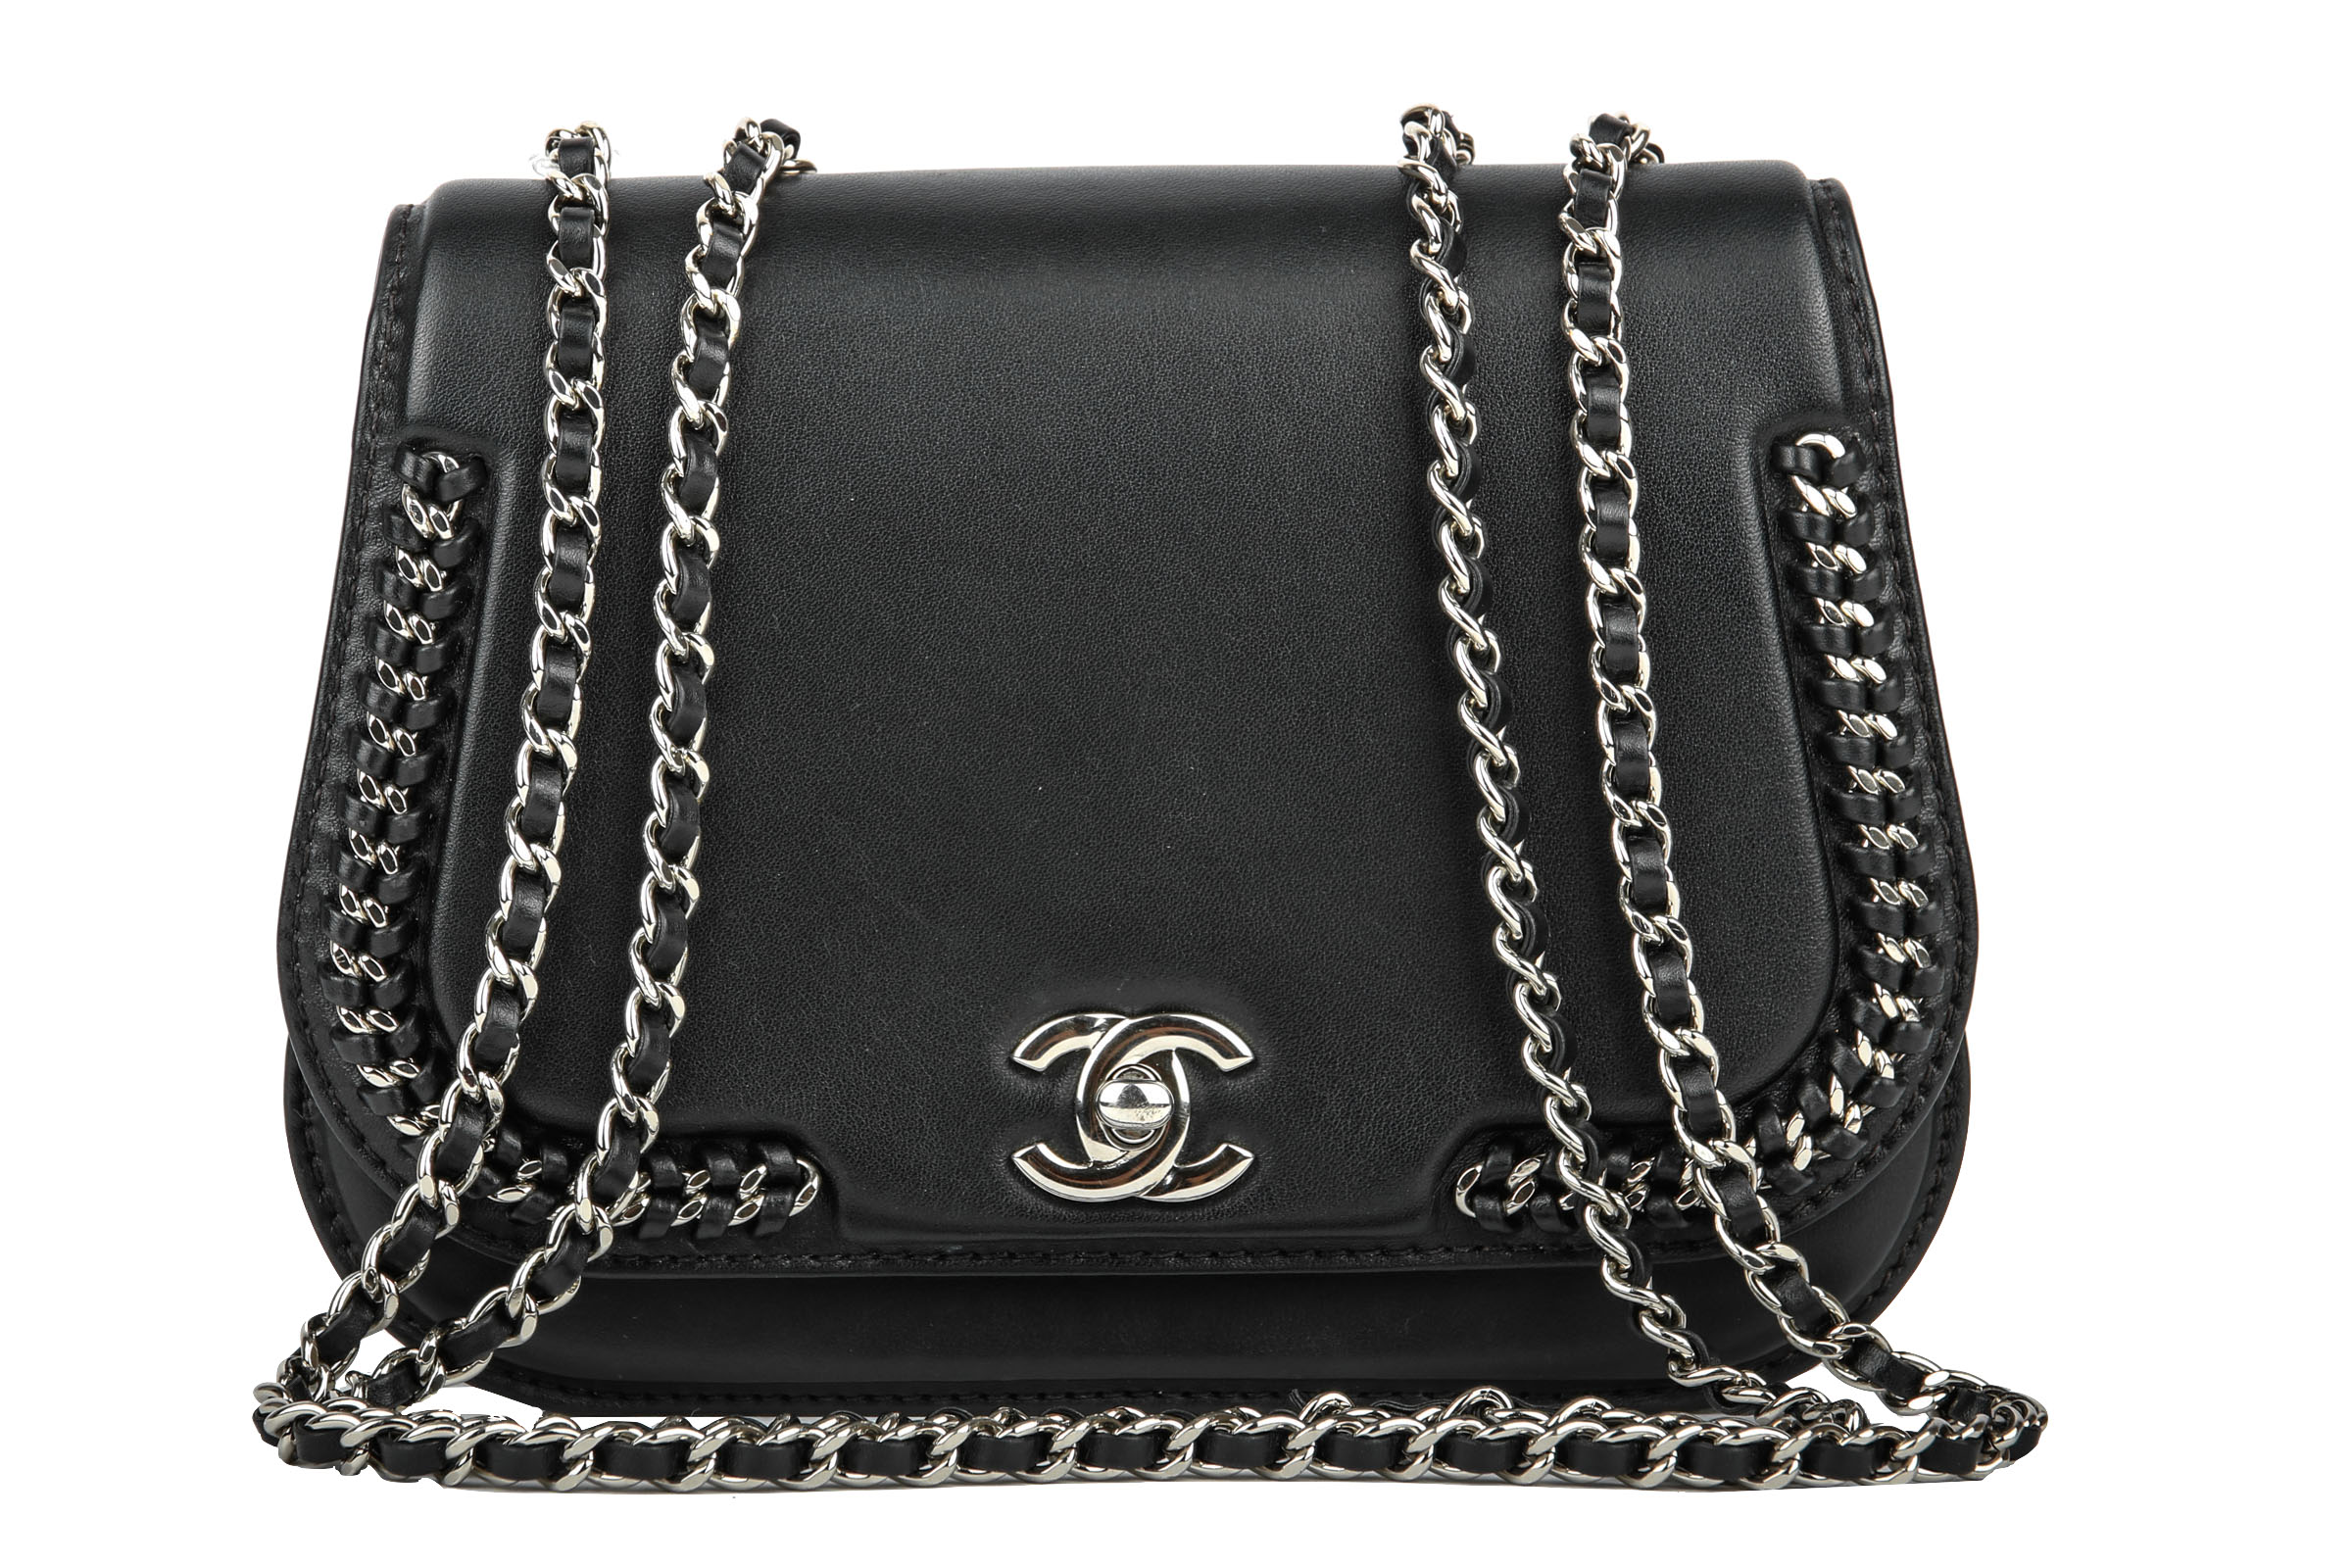 d965f7877fc3c Chanel Chain Crossbody Bag Schwarz